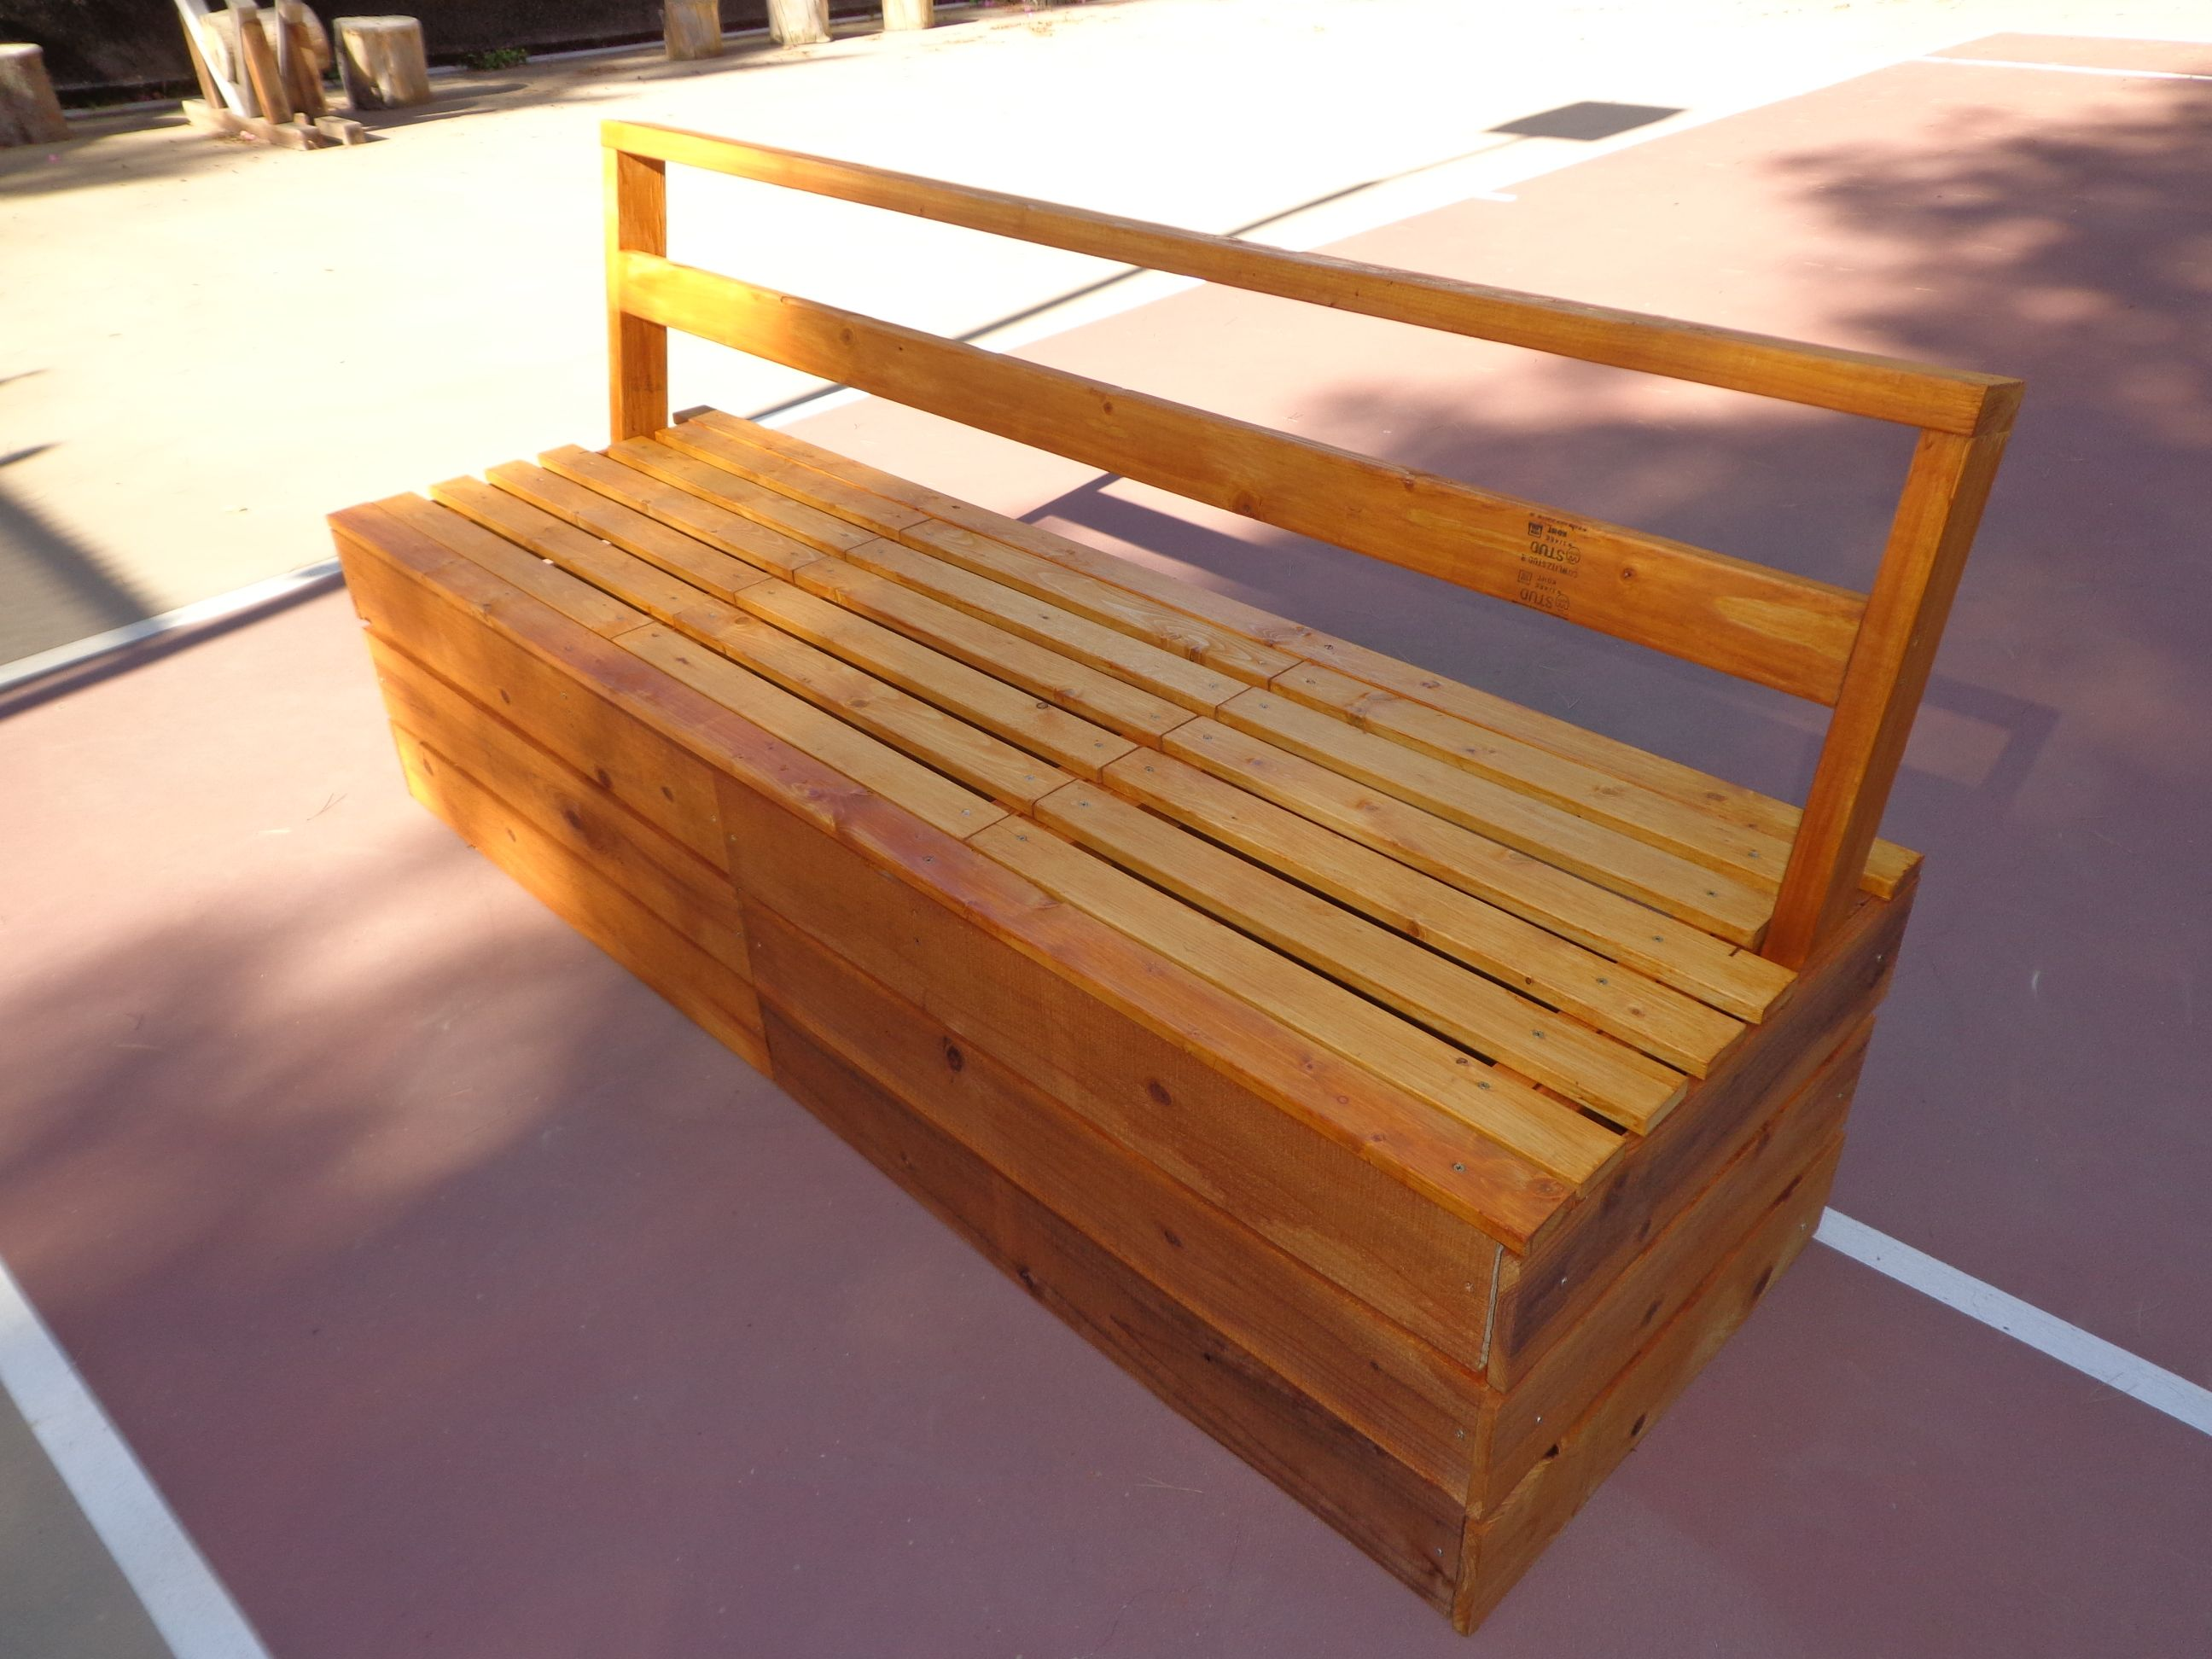 Astounding Outdoor Firewood Storage Bench Everythings Firewood Gmtry Best Dining Table And Chair Ideas Images Gmtryco